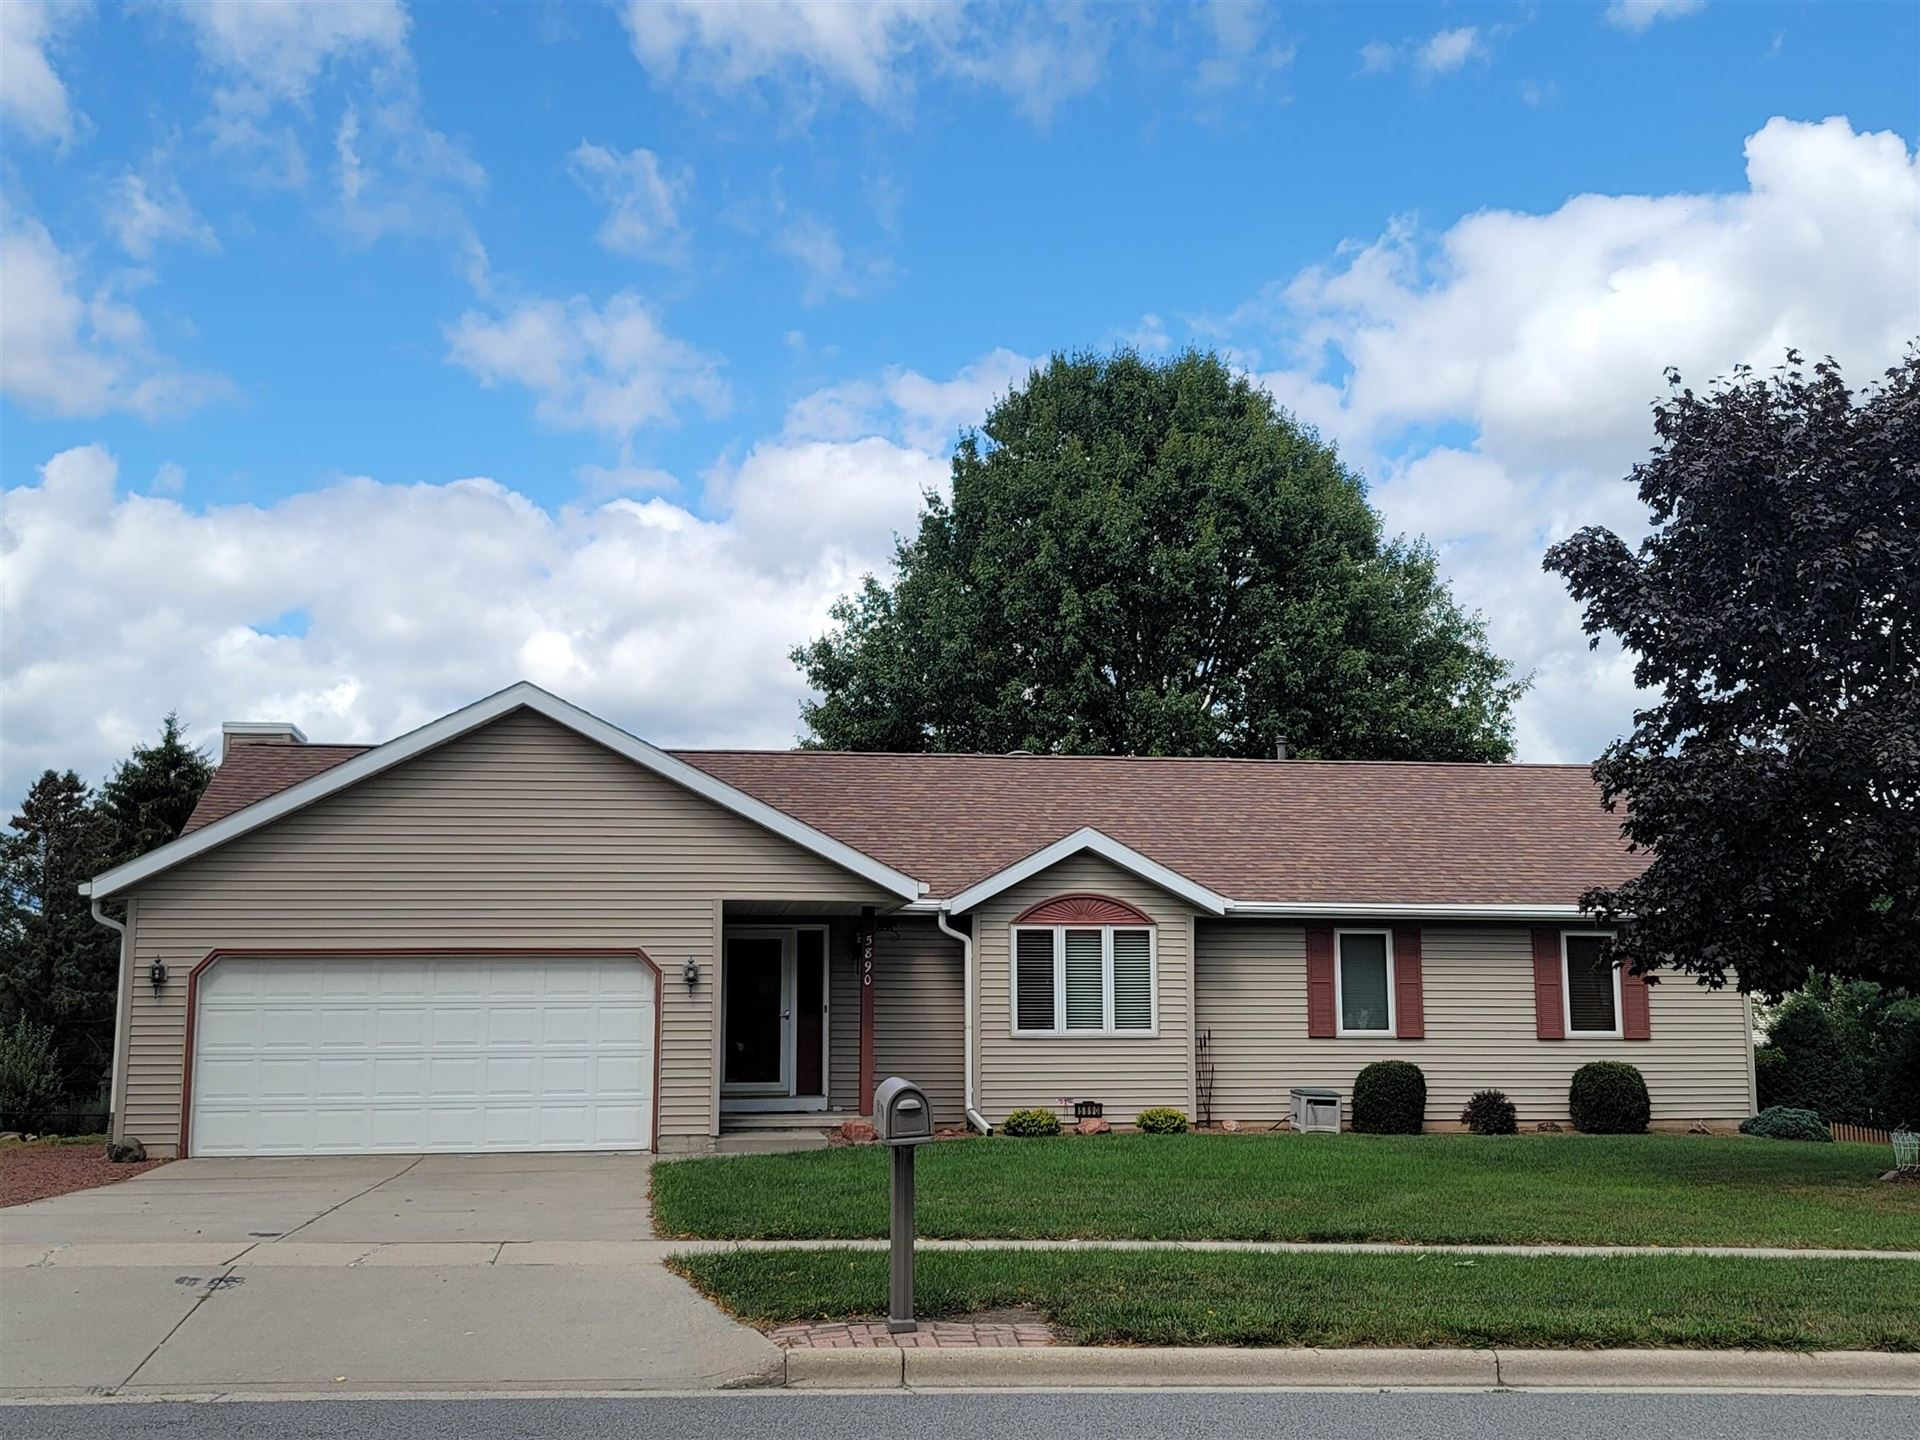 Photo for 5890 Woodland Dr, Waunakee, WI 53597-8718 (MLS # 1919413)